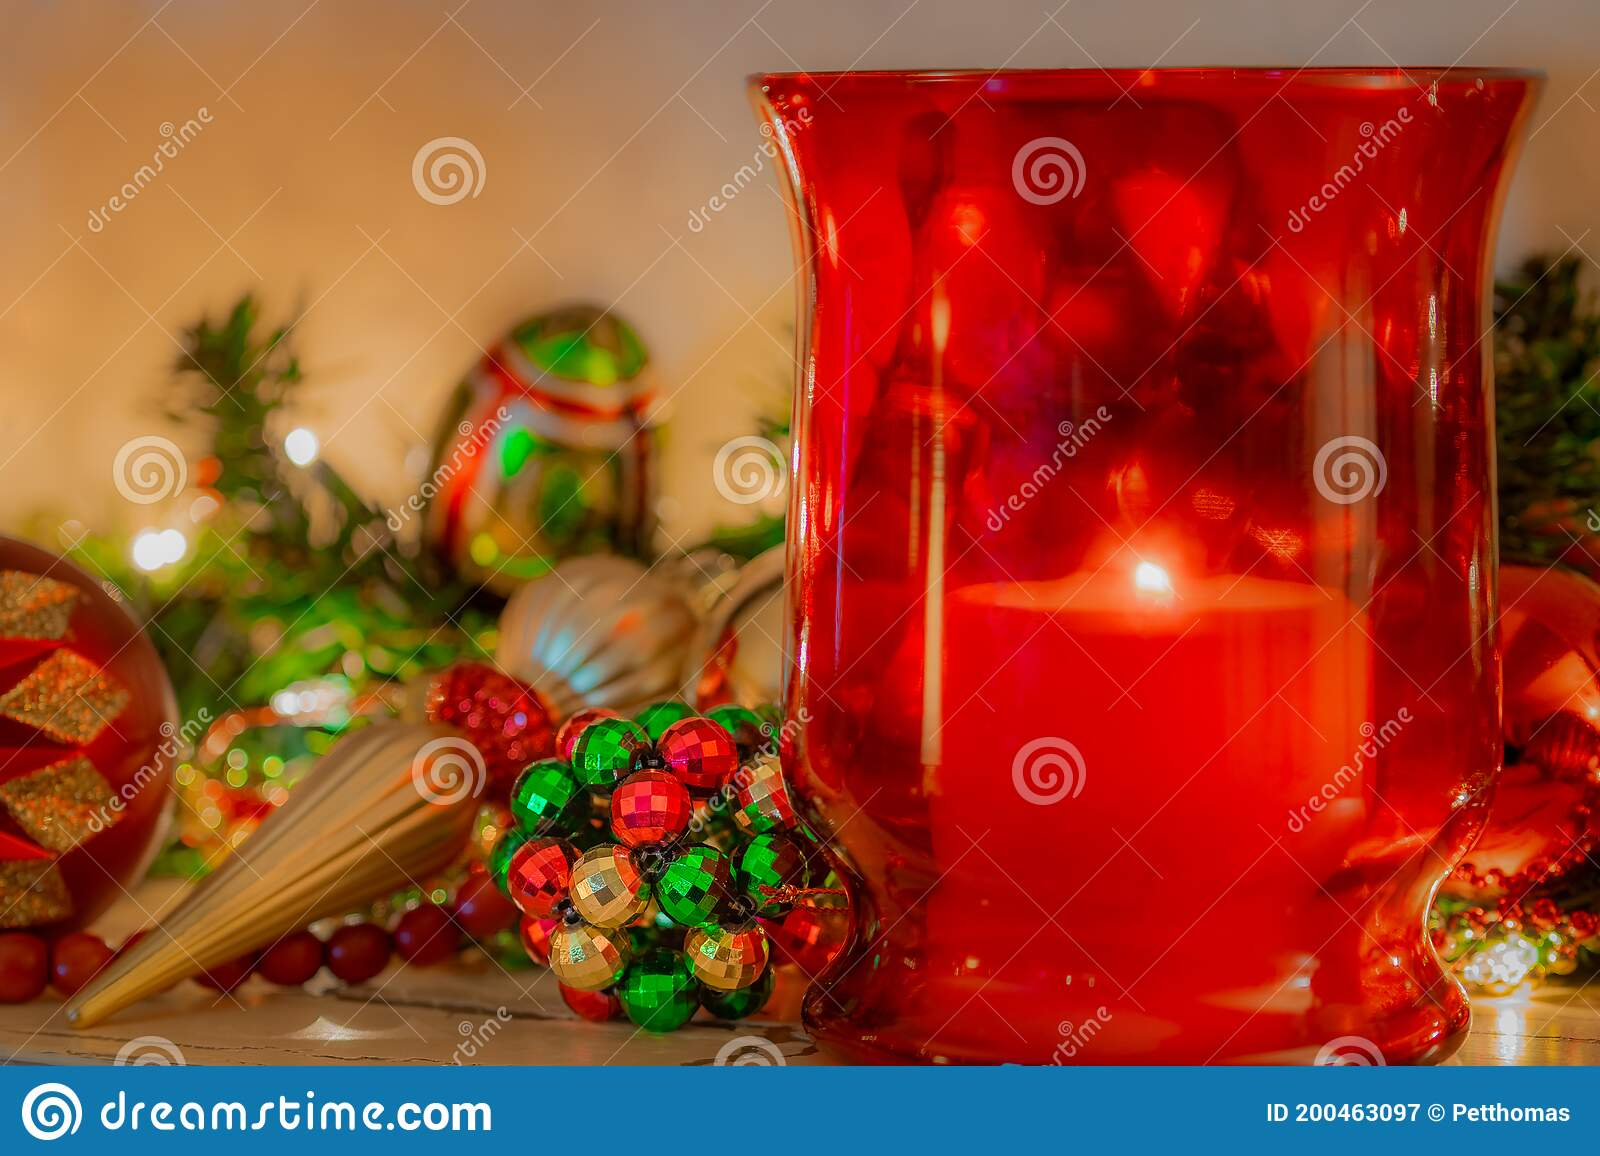 Christmas Mantelpiece With Red And Green Ornaments And Red Glass Candle Holder Stock Image Image Of Garland Glittering 200463097